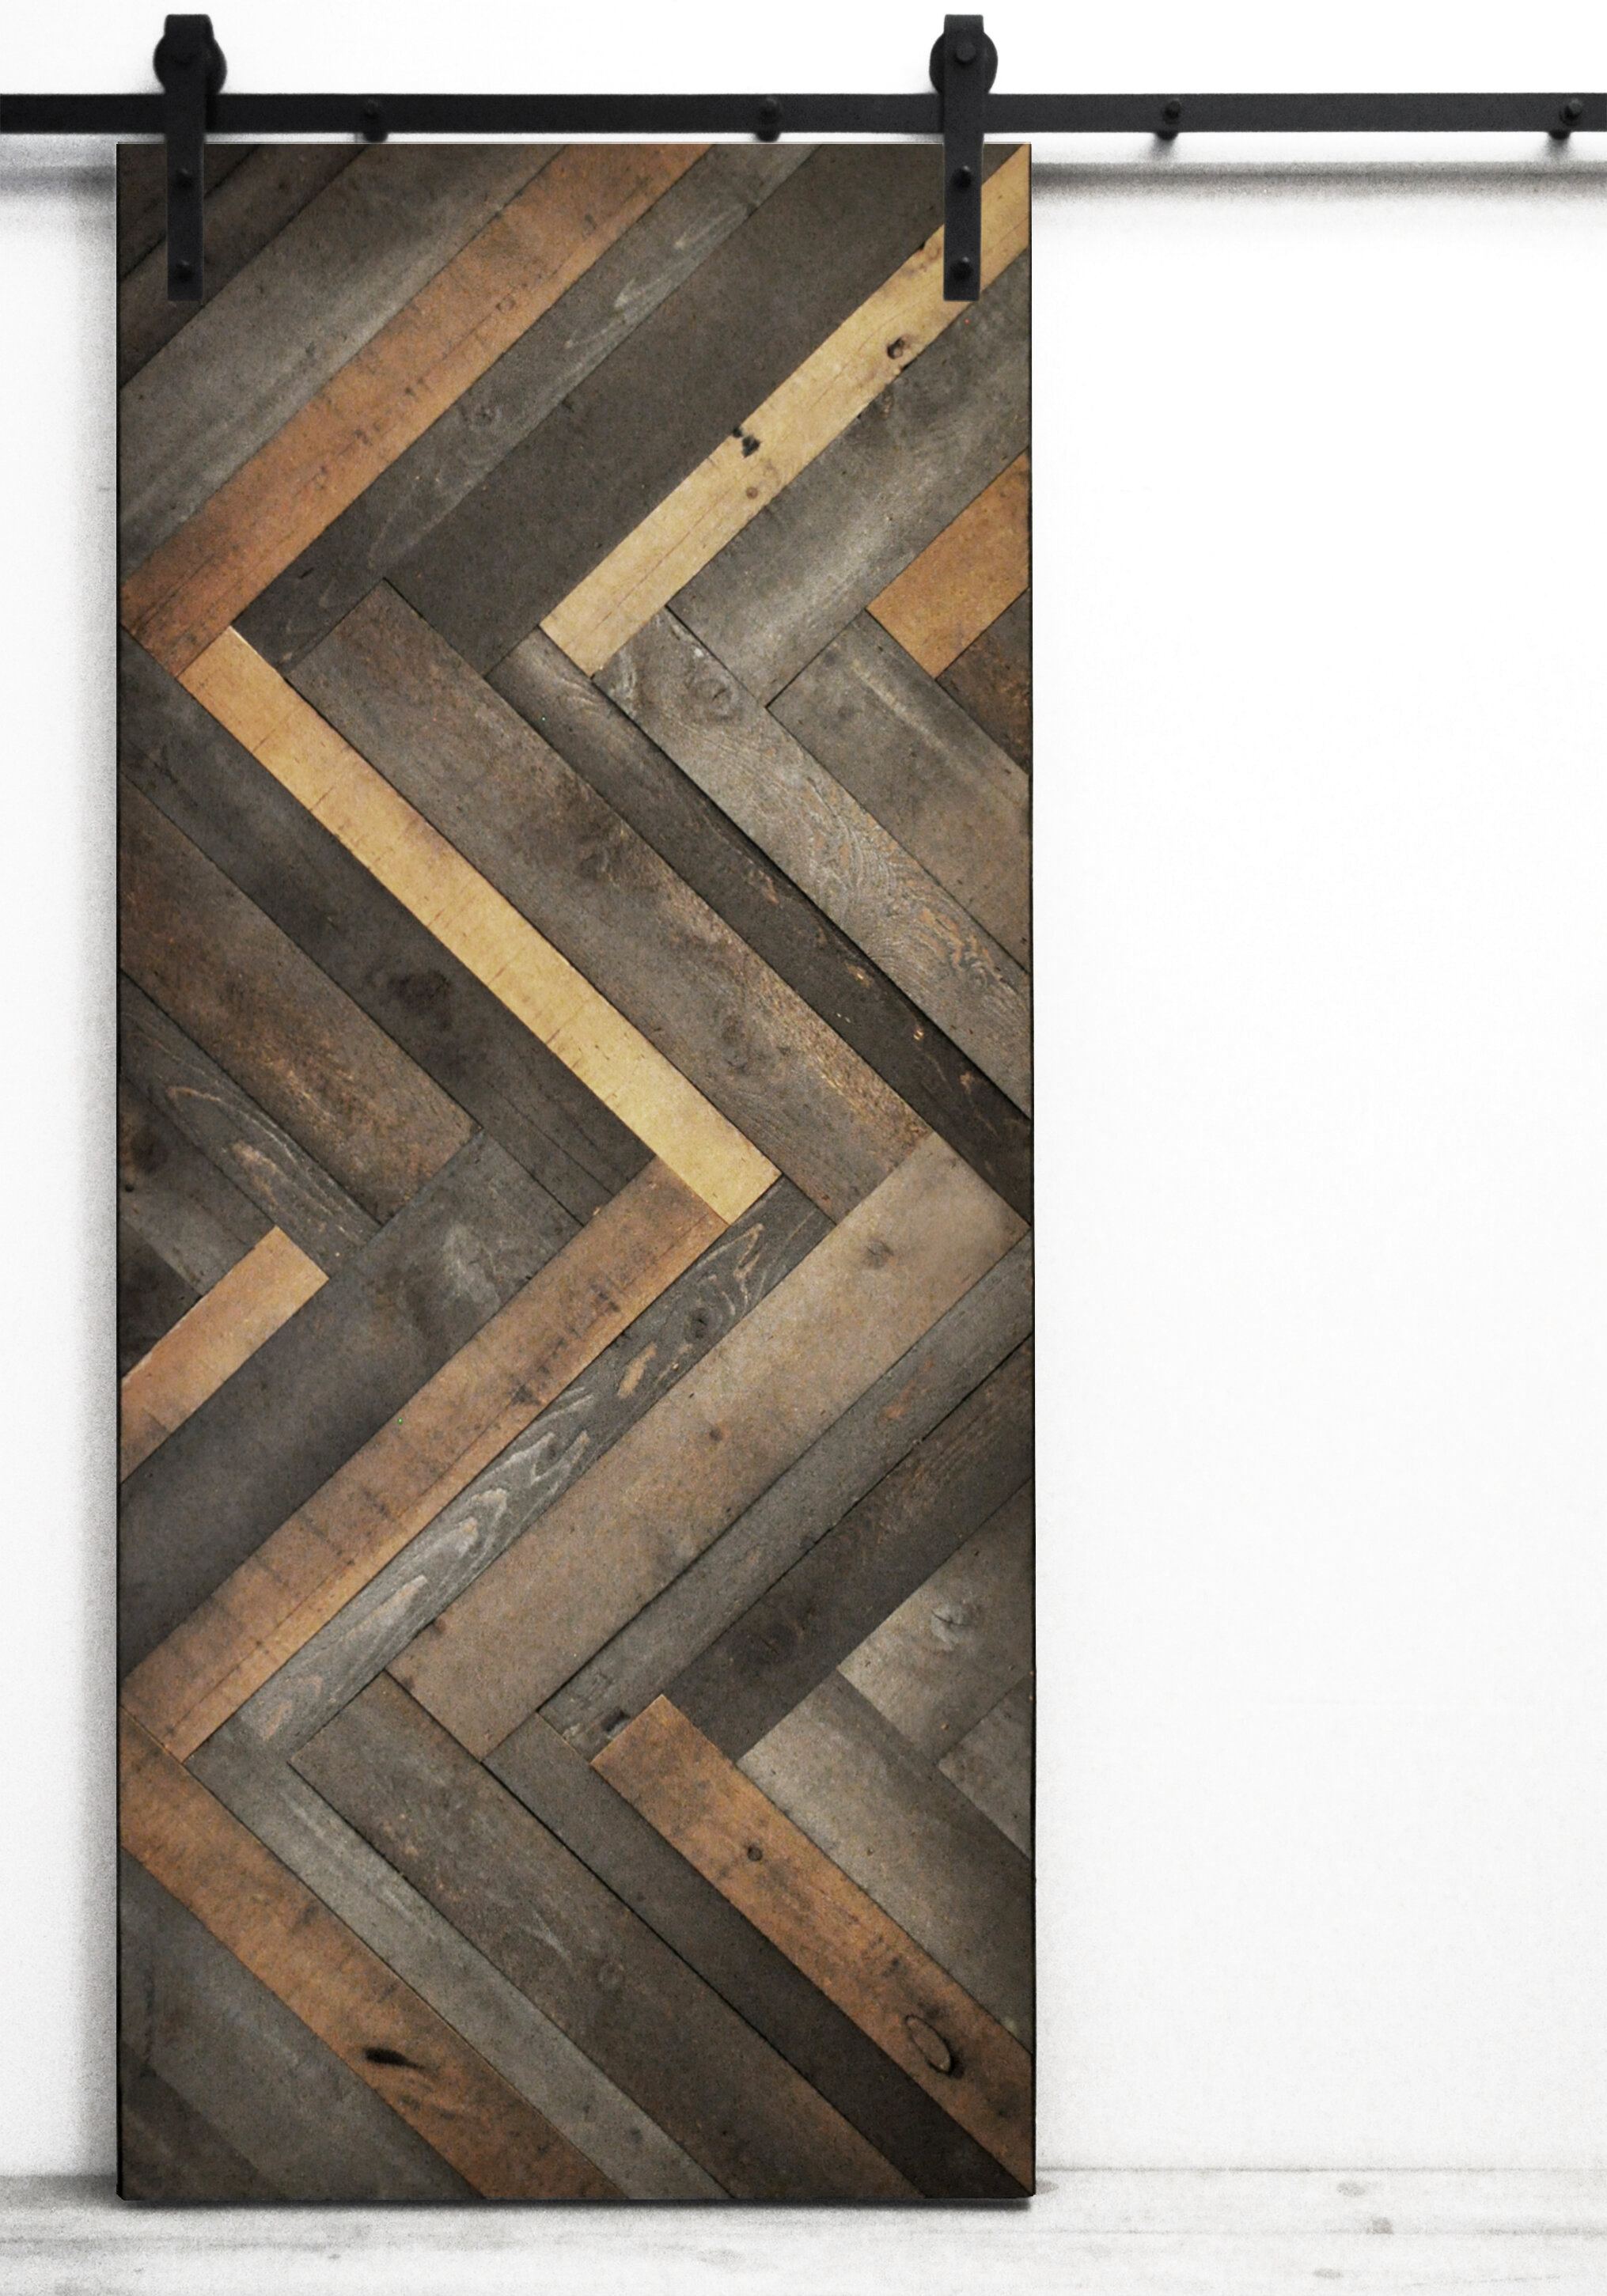 Dogberry Collections Herringbone Wood Stained Interior Barn Door u0026 Reviews   Wayfair & Dogberry Collections Herringbone Wood Stained Interior Barn Door ...